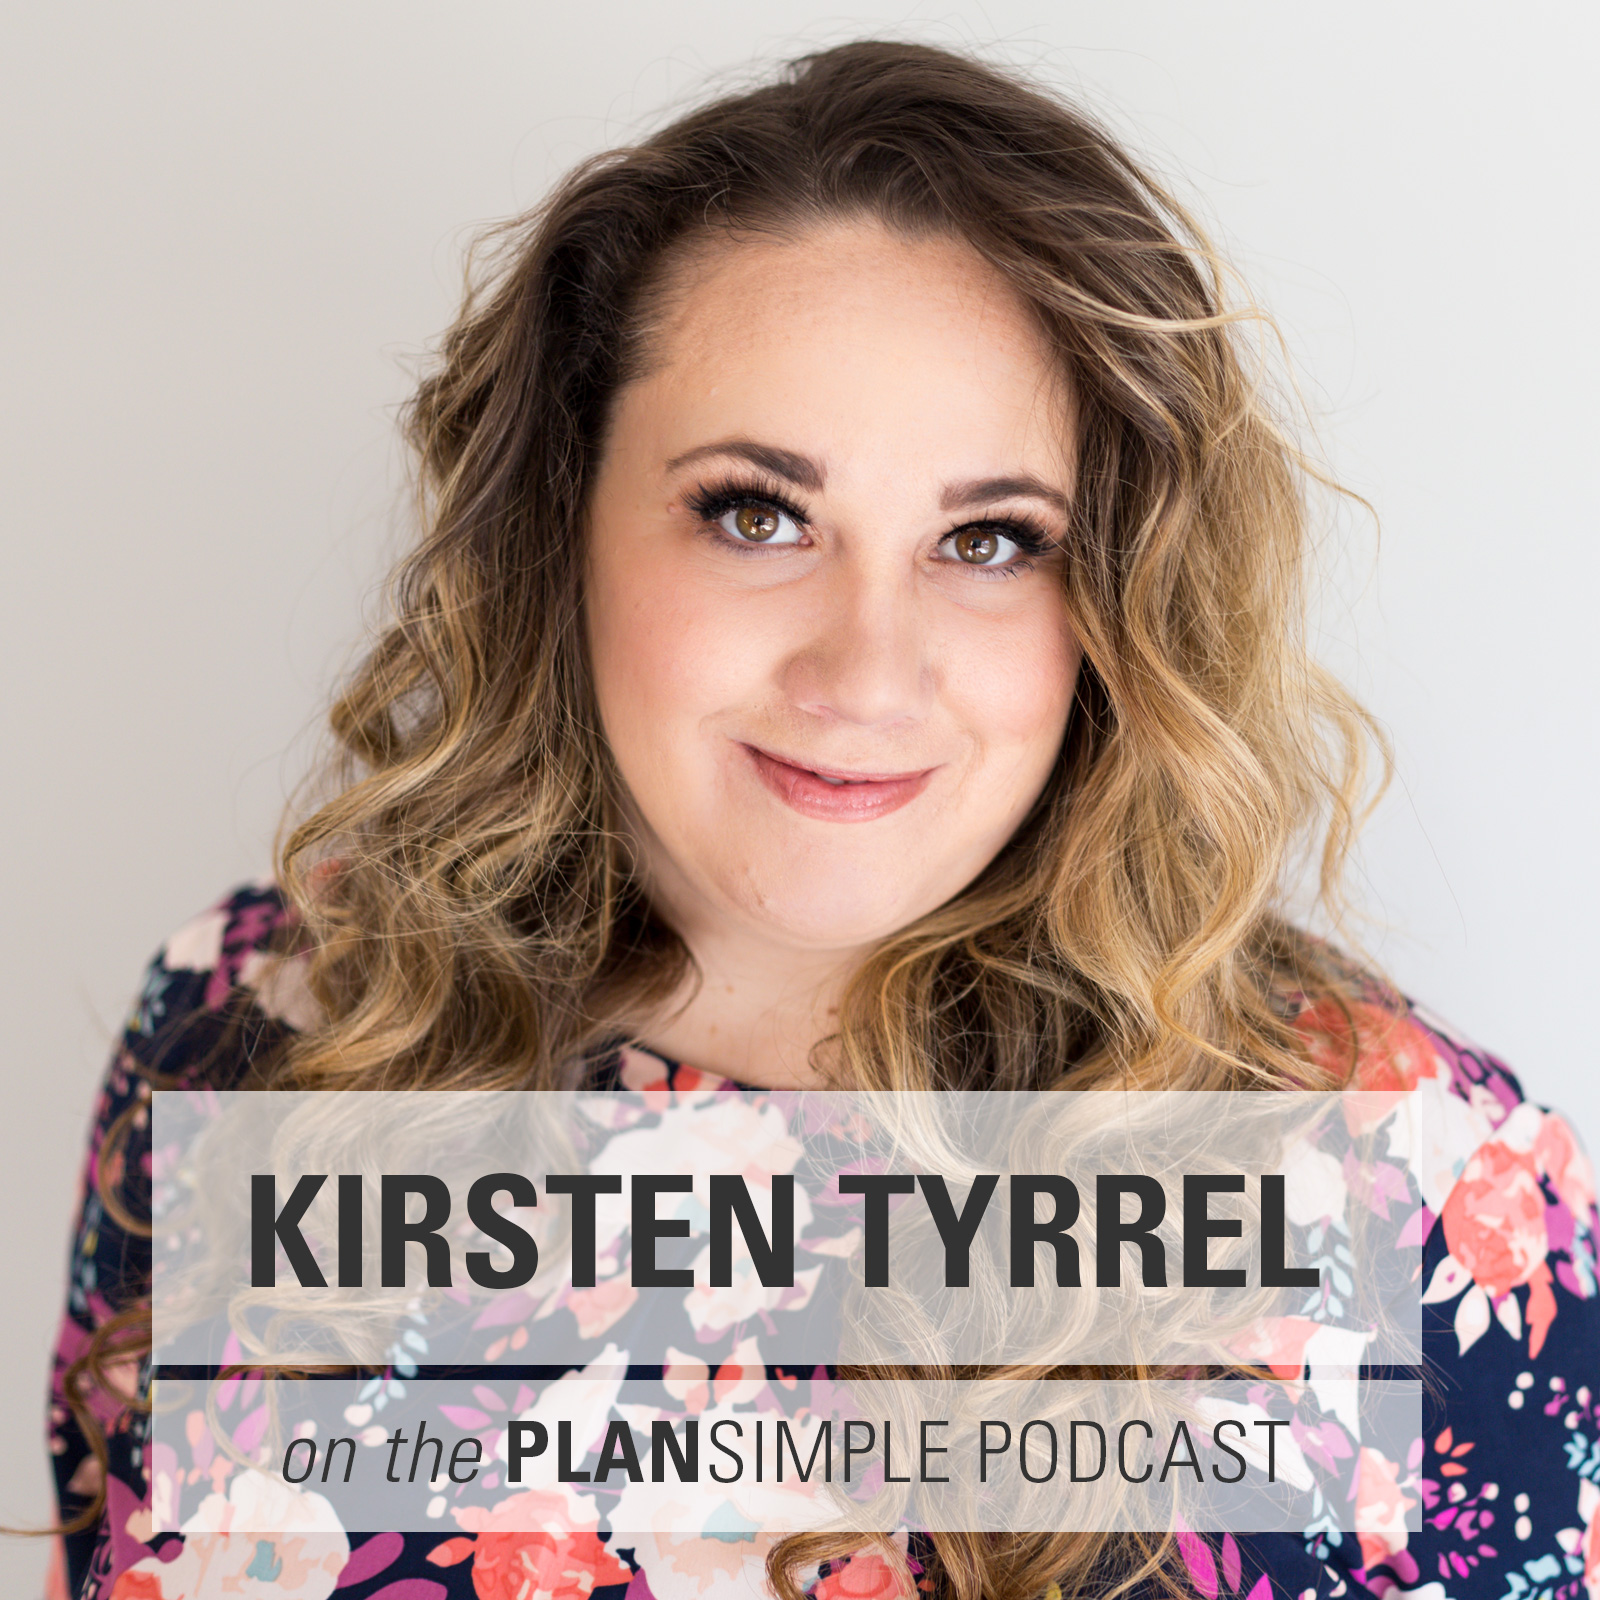 Kirsten-Tyrrel-Podcast